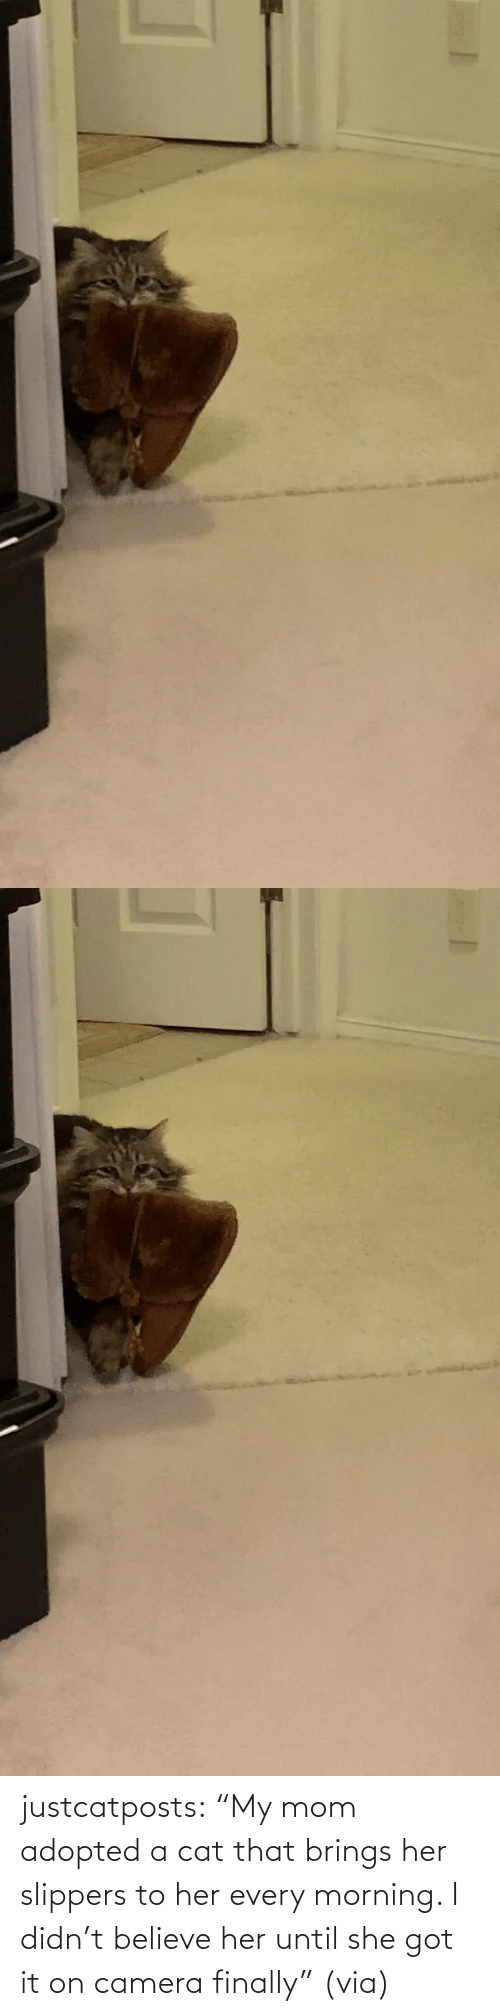 "Every: justcatposts:  ""My mom adopted a cat that brings her slippers to her every morning. I didn't believe her until she got it on camera finally"" (via)"